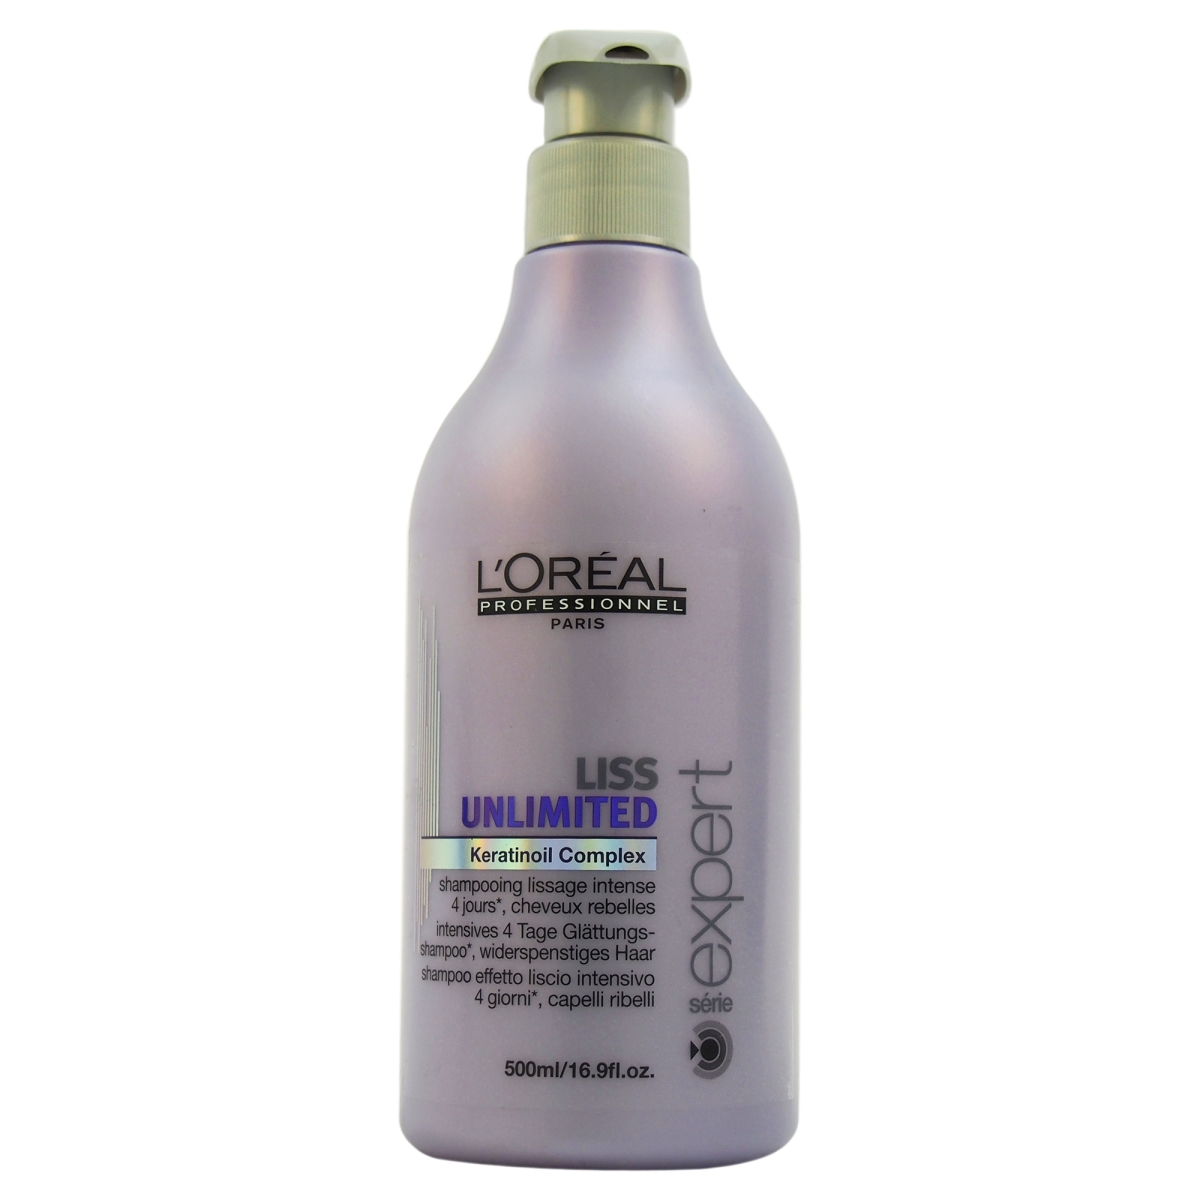 LOreal Professional Liss Unlimited Keratinoil U-HC-7815 16.9 oz Complex Shampoo for Unisex